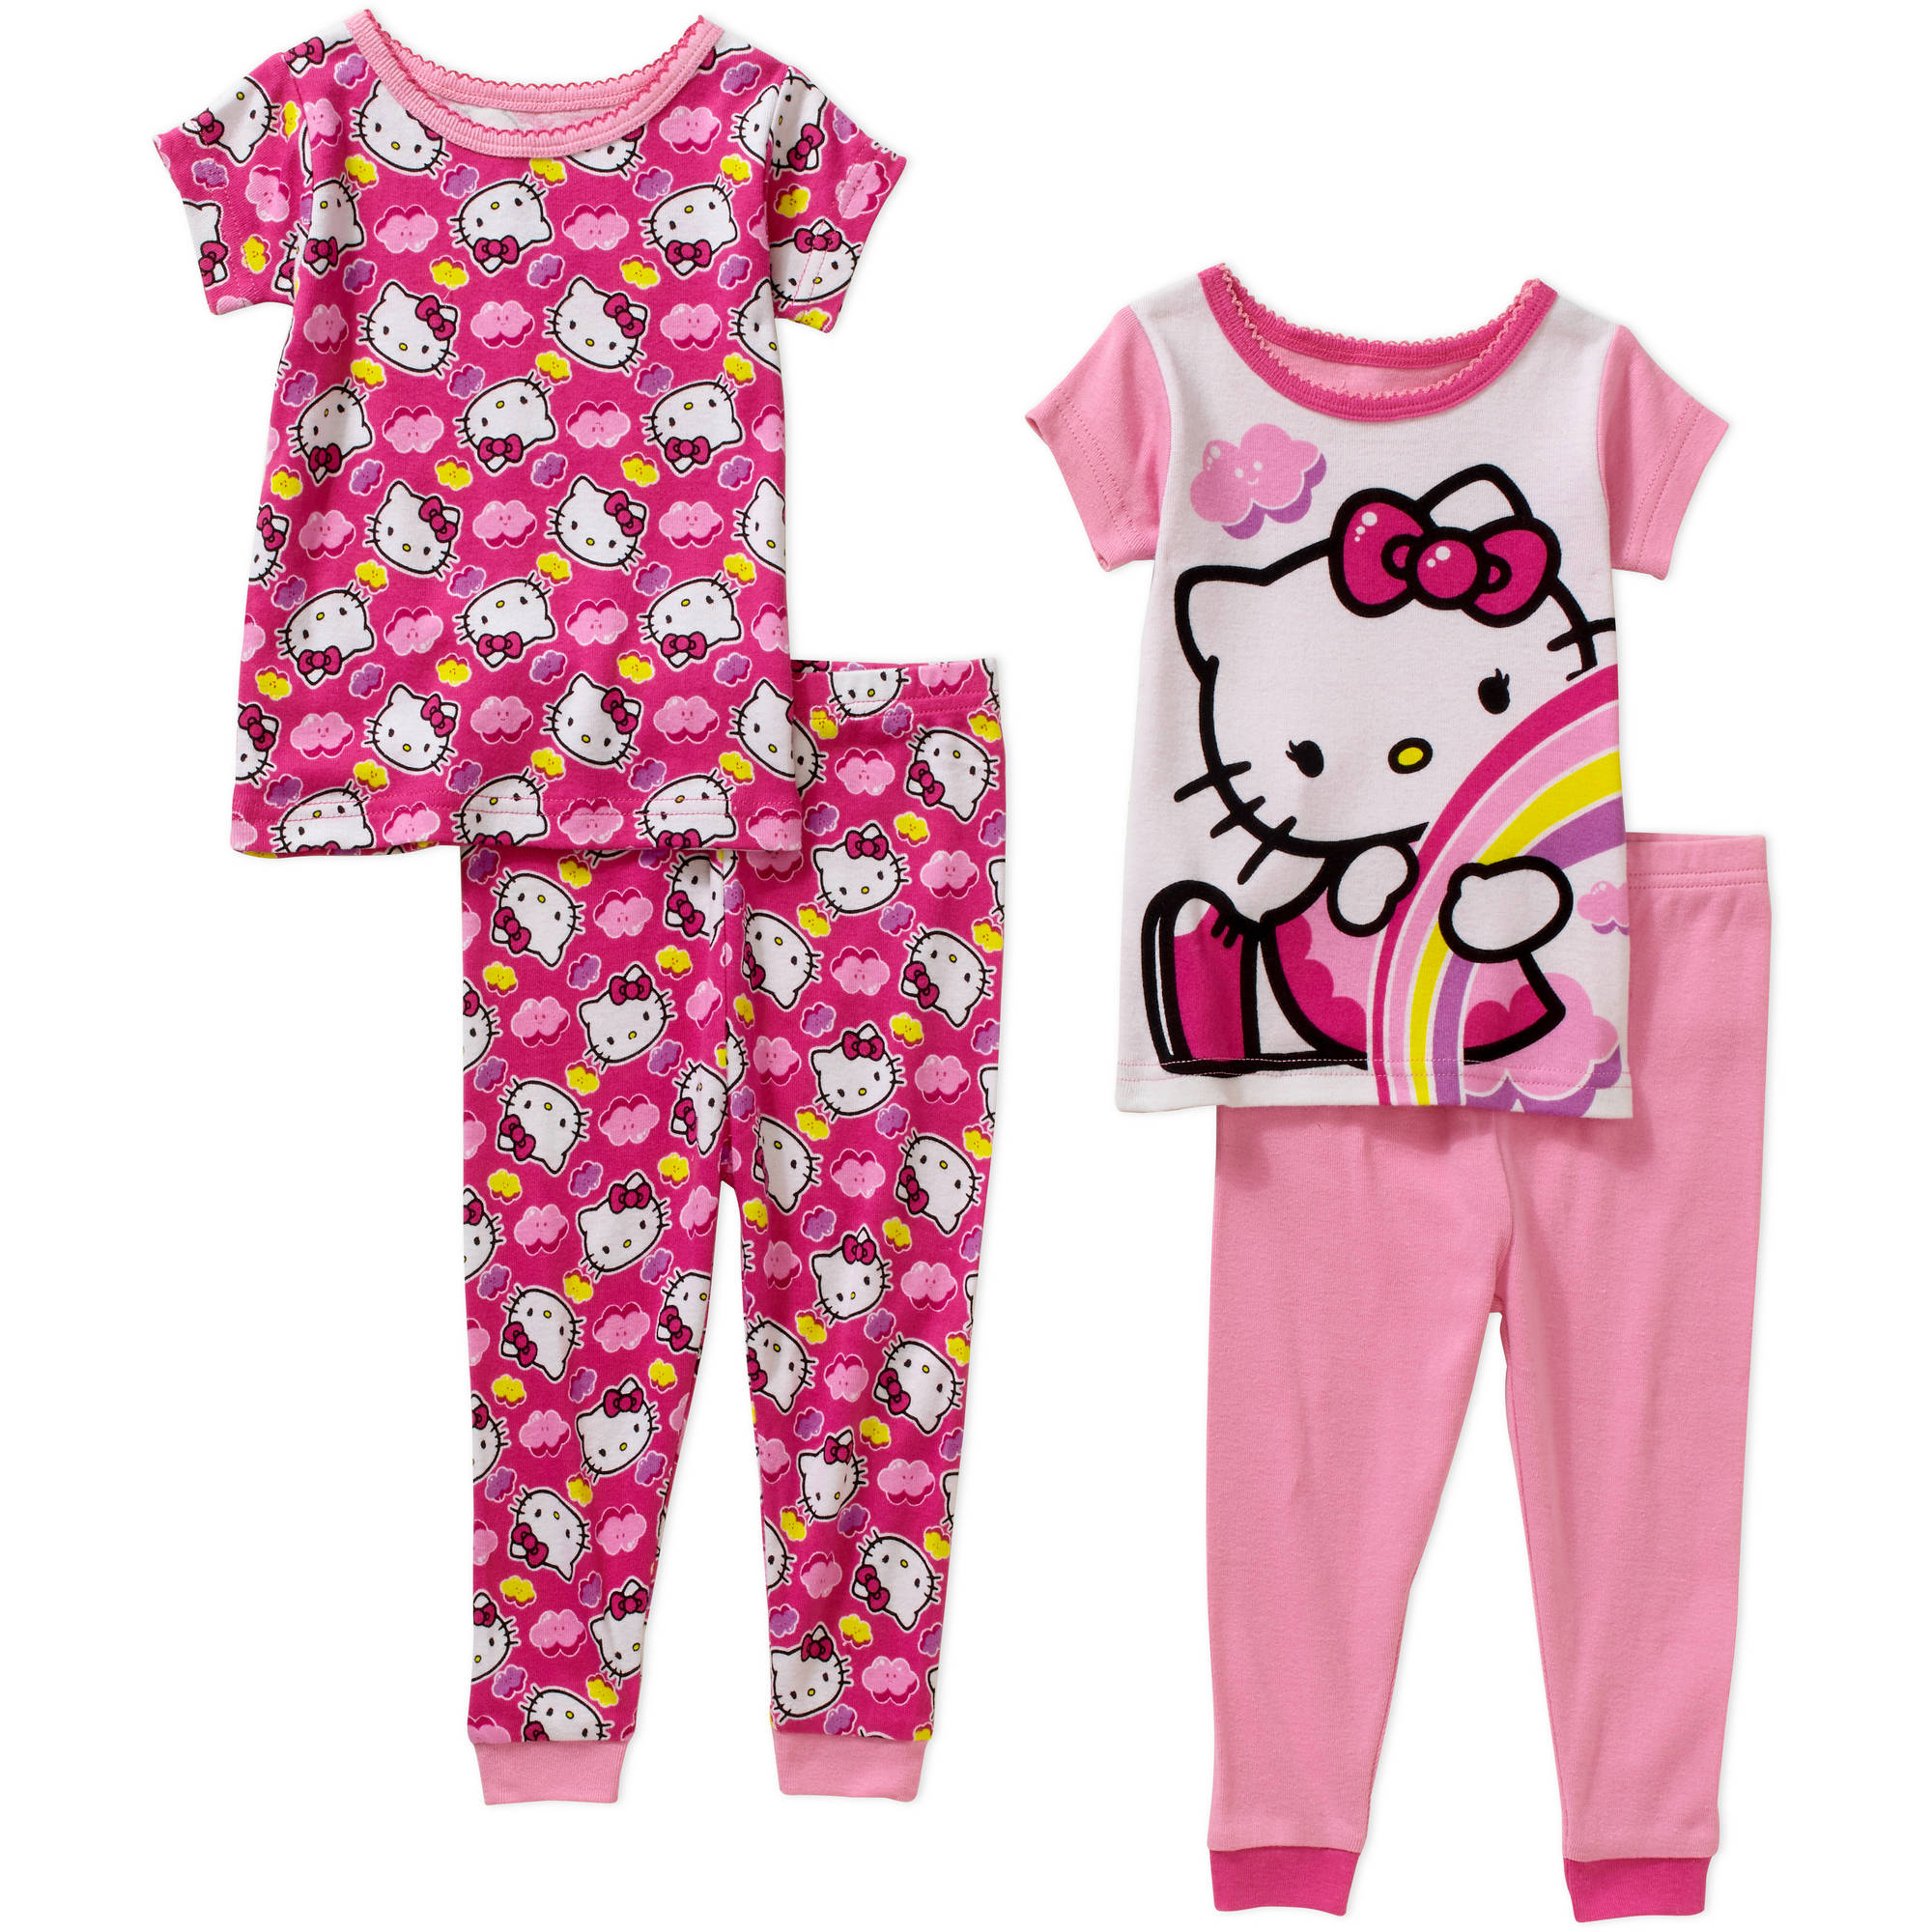 Hello Kitty Infant Baby Girl Cotton Tight Fit Short Sleeve Pajamas, 4-Pieces